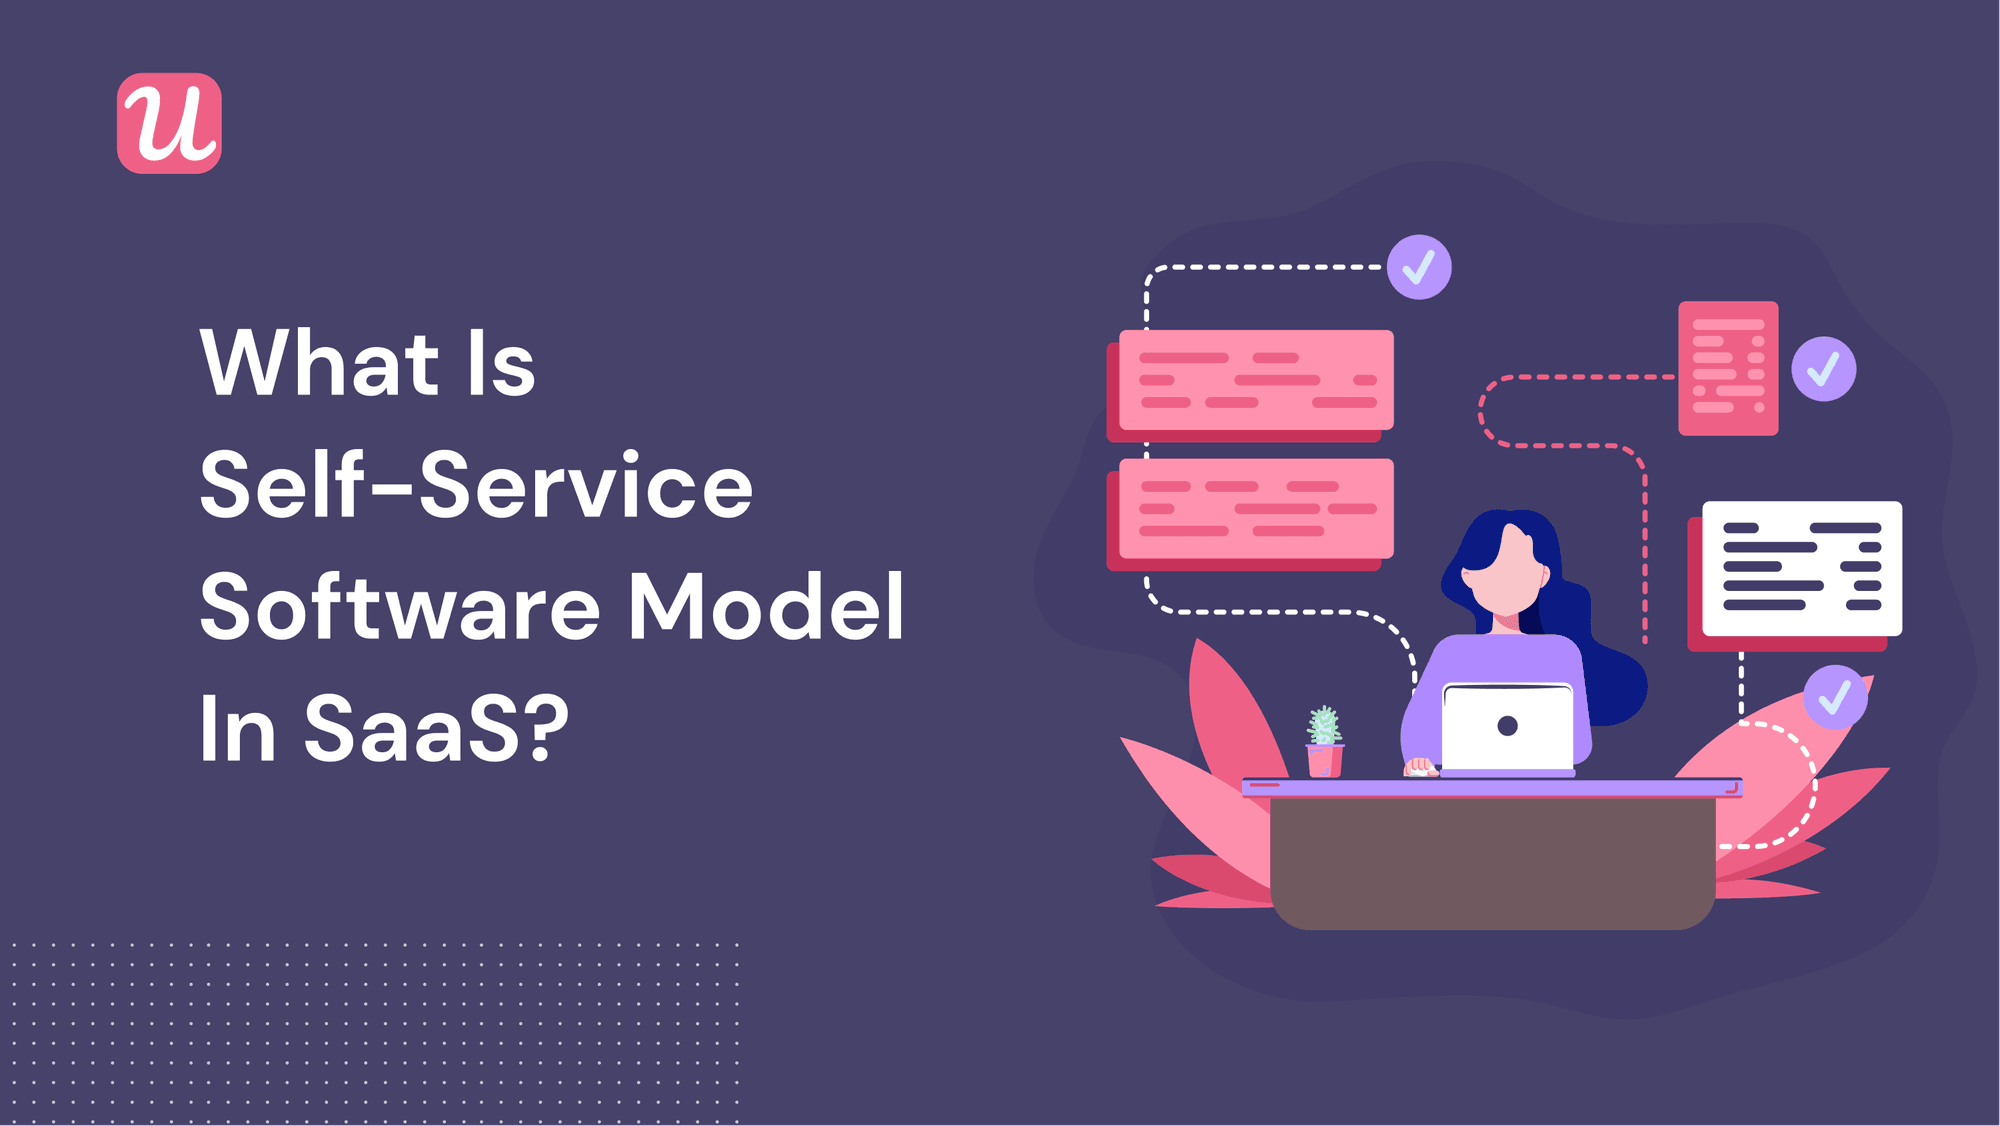 What Is The Self-Service Software Model In SaaS?